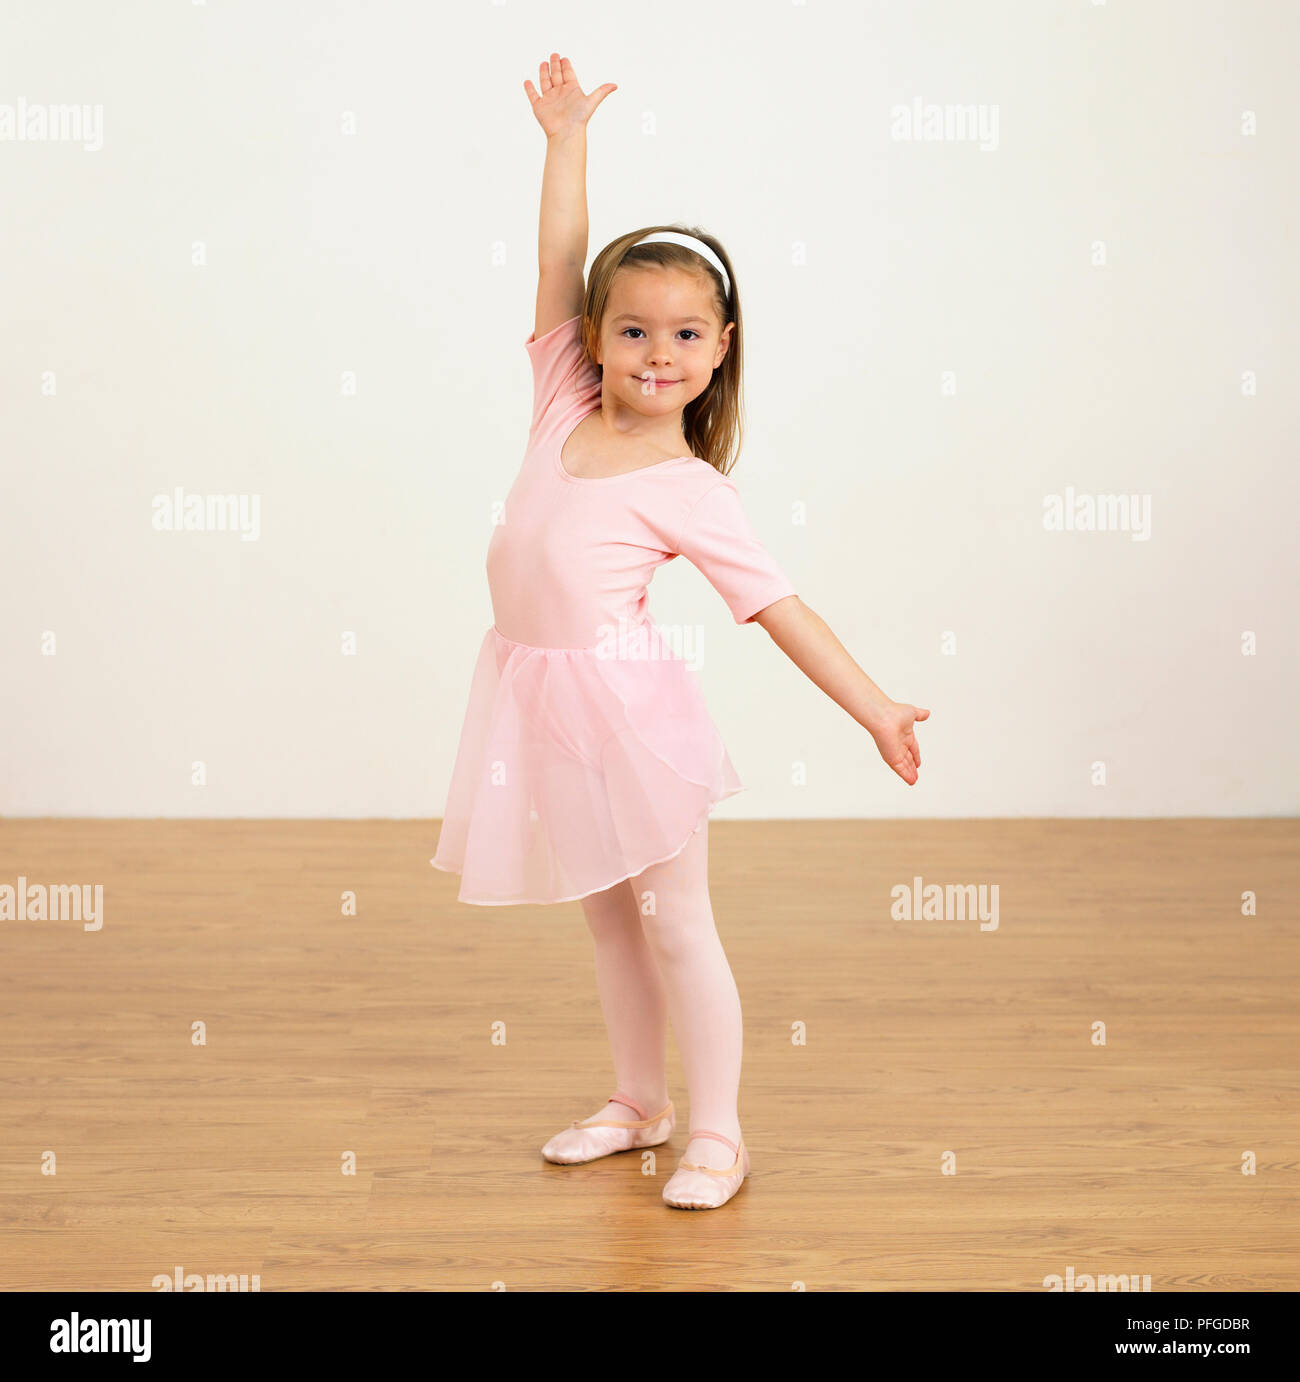 e8b08e80a Girl in ballerina outfit holding one arm up and the other to her ...